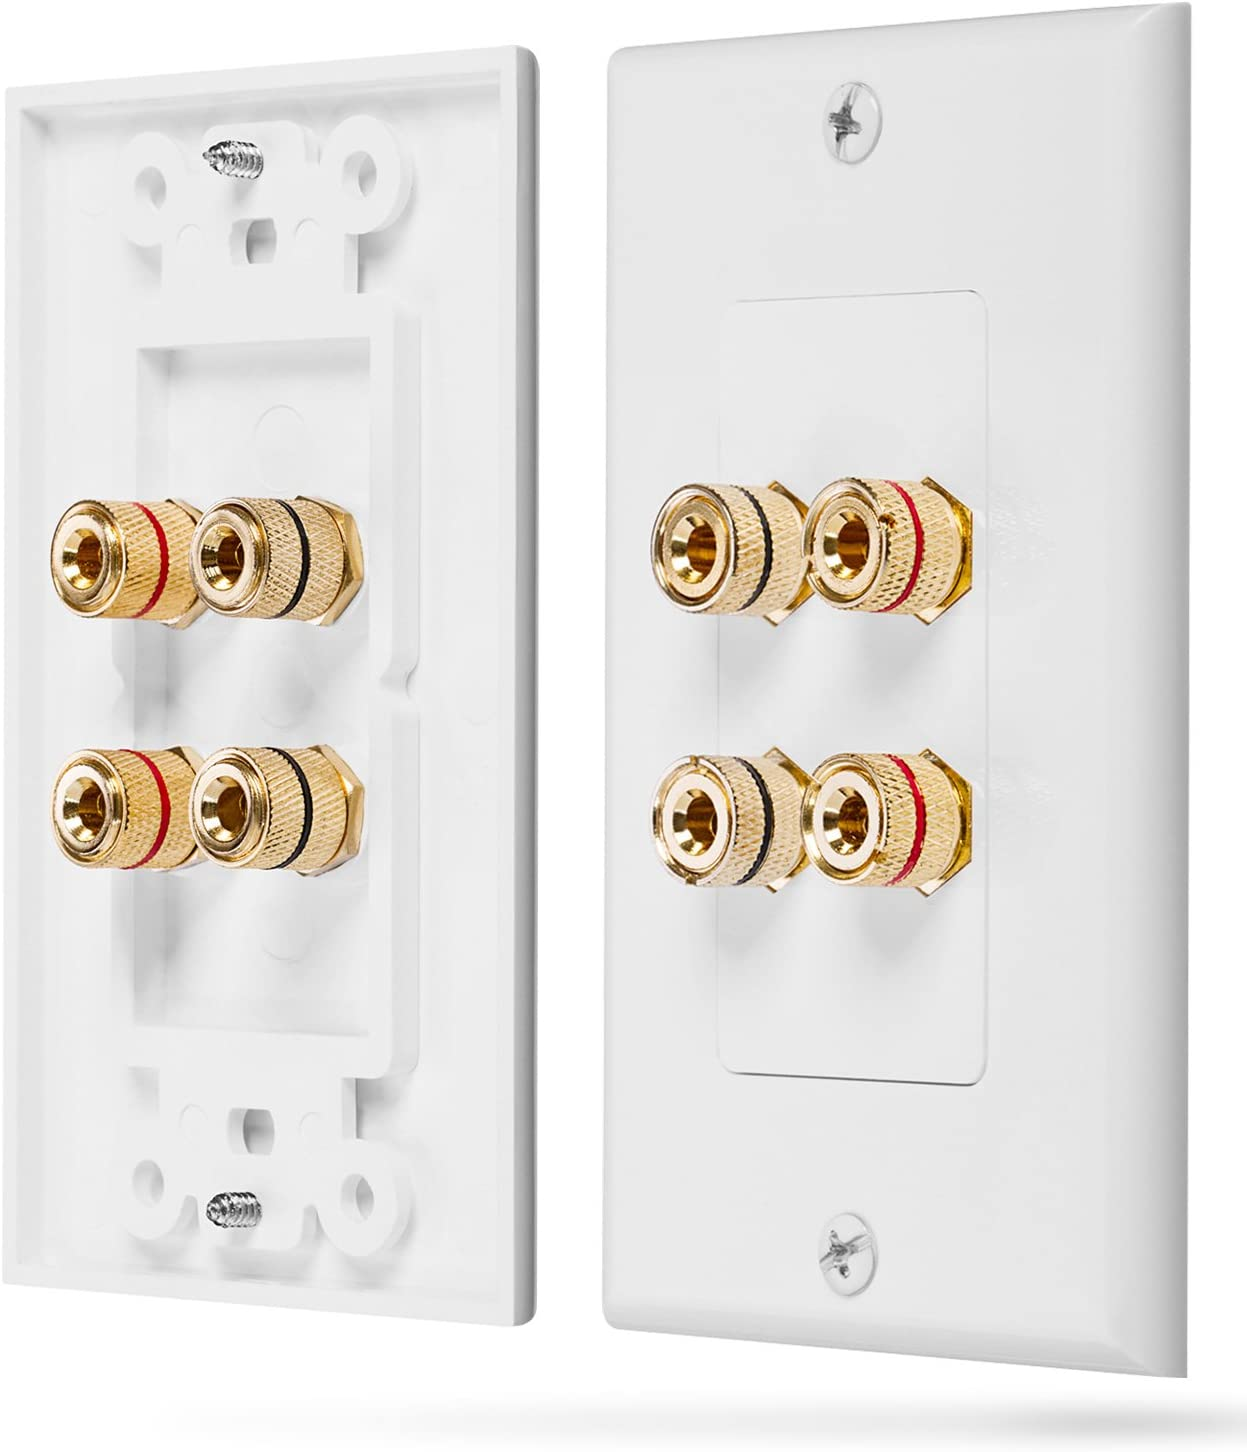 Fosmon Home Theater Wall Plate - Premium Quality Gold Plated Copper Banana Binding Post Coupler Type Wall Plate (White) (Two Speaker)